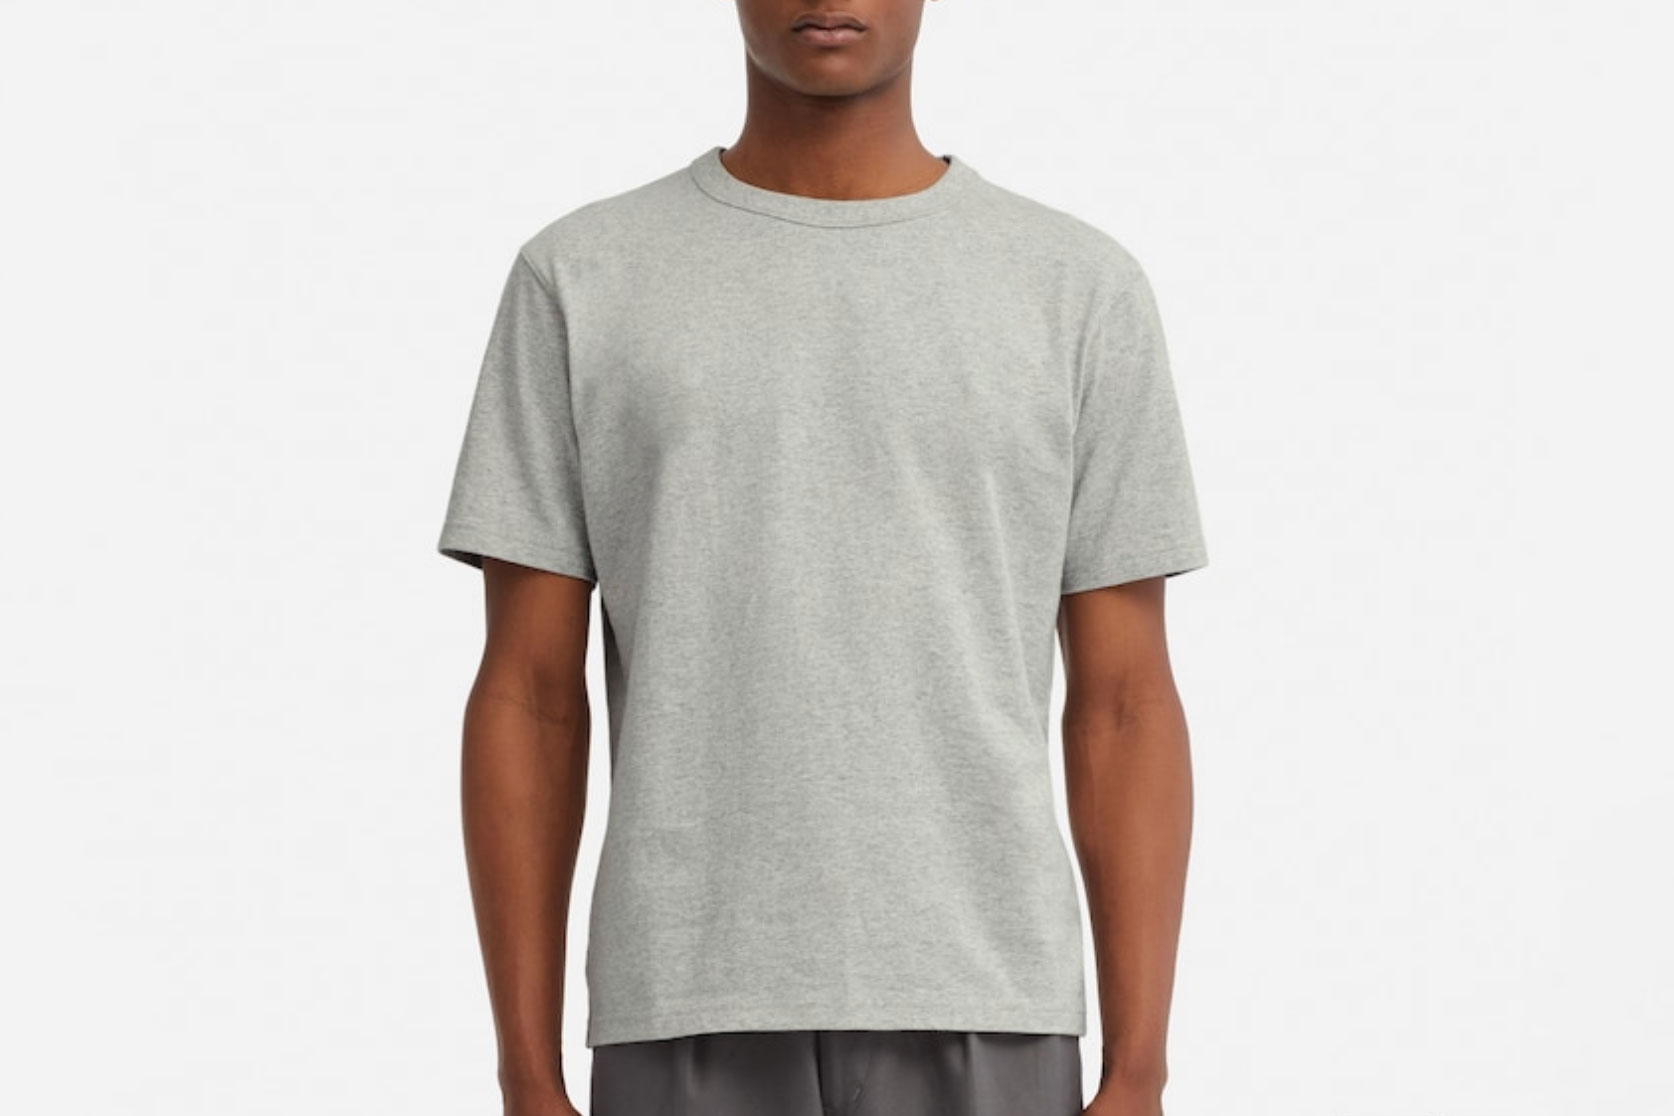 Uniqlo Men U Crew Neck Short Sleeve T-Shirt